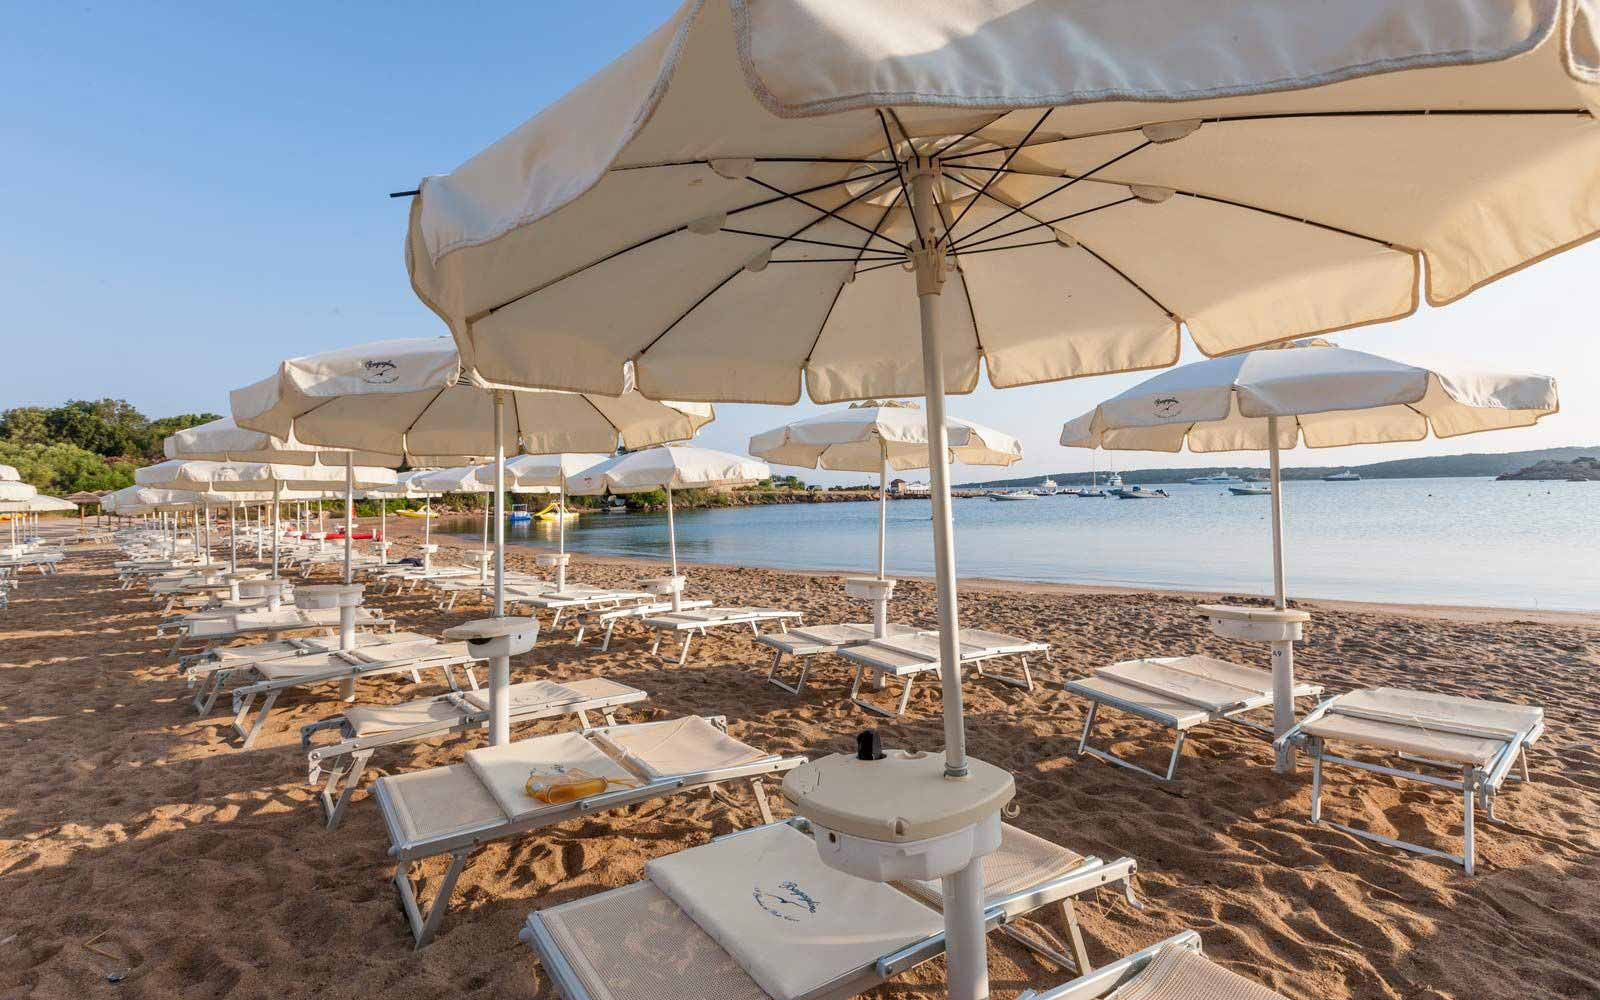 Sun loungers on the beach at Hotel Le Palme